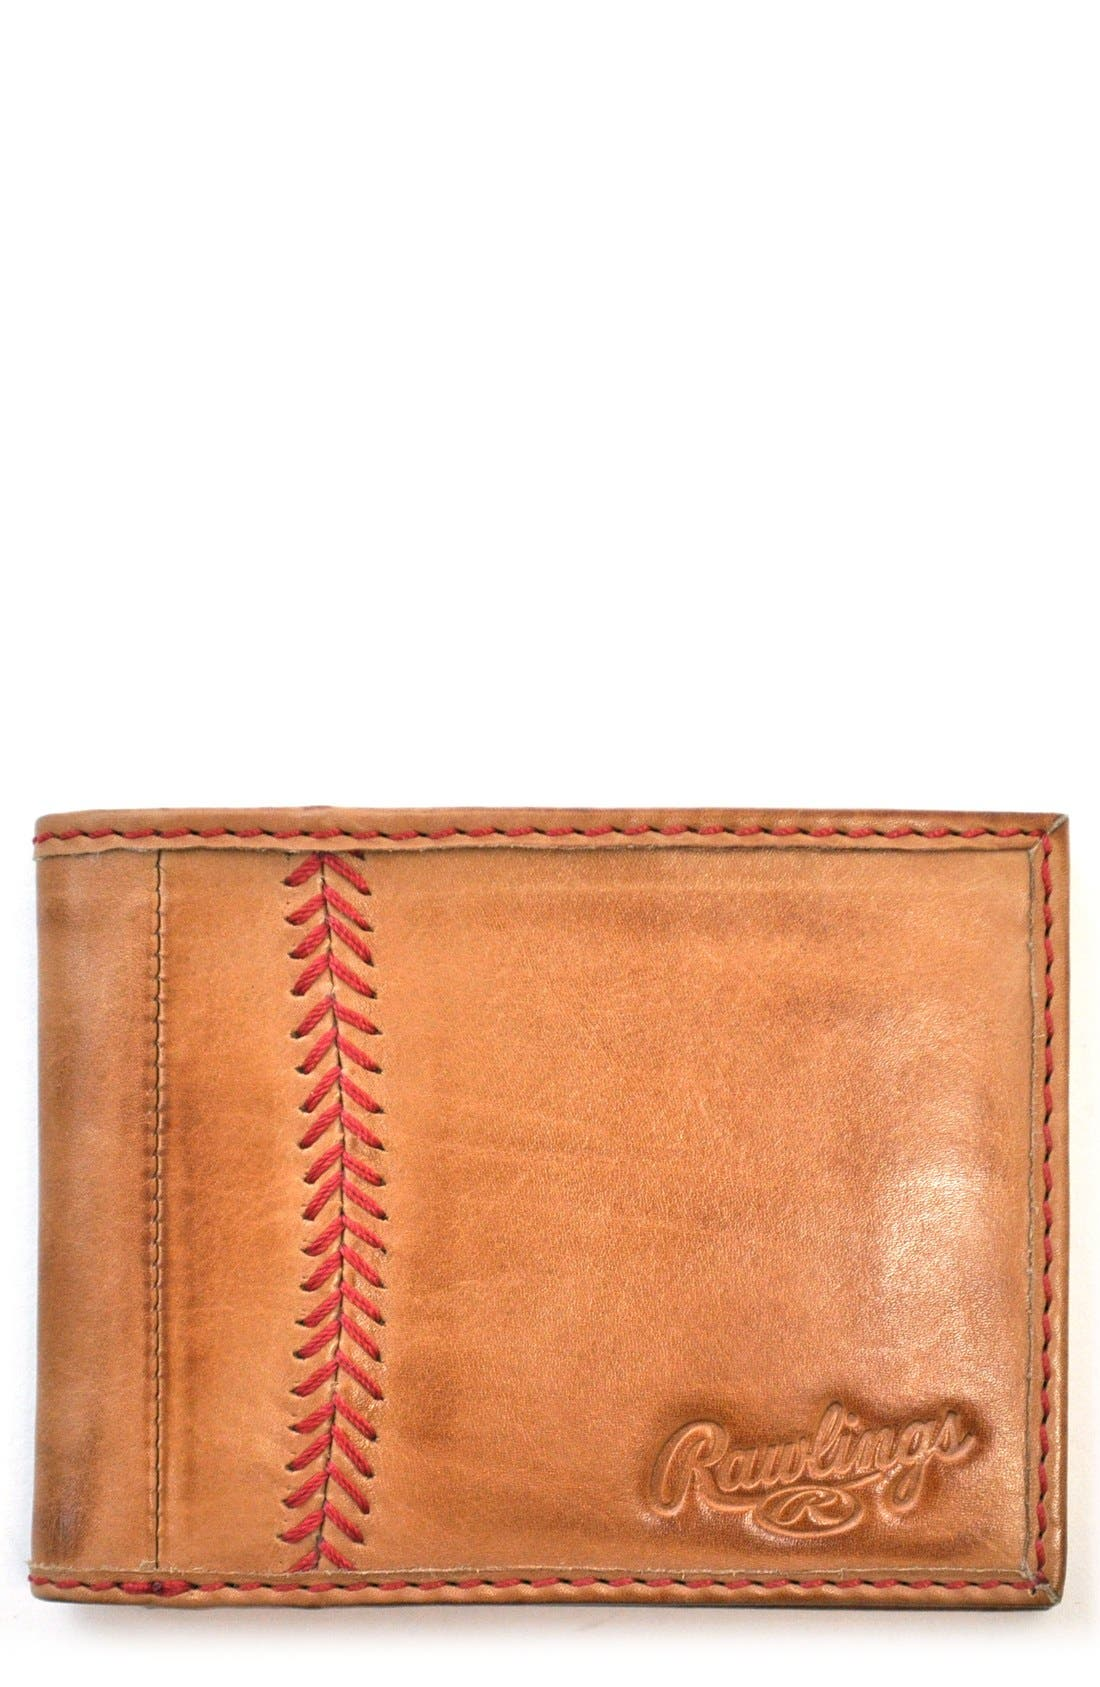 RAWLINGS Baseball Stitch Wallet